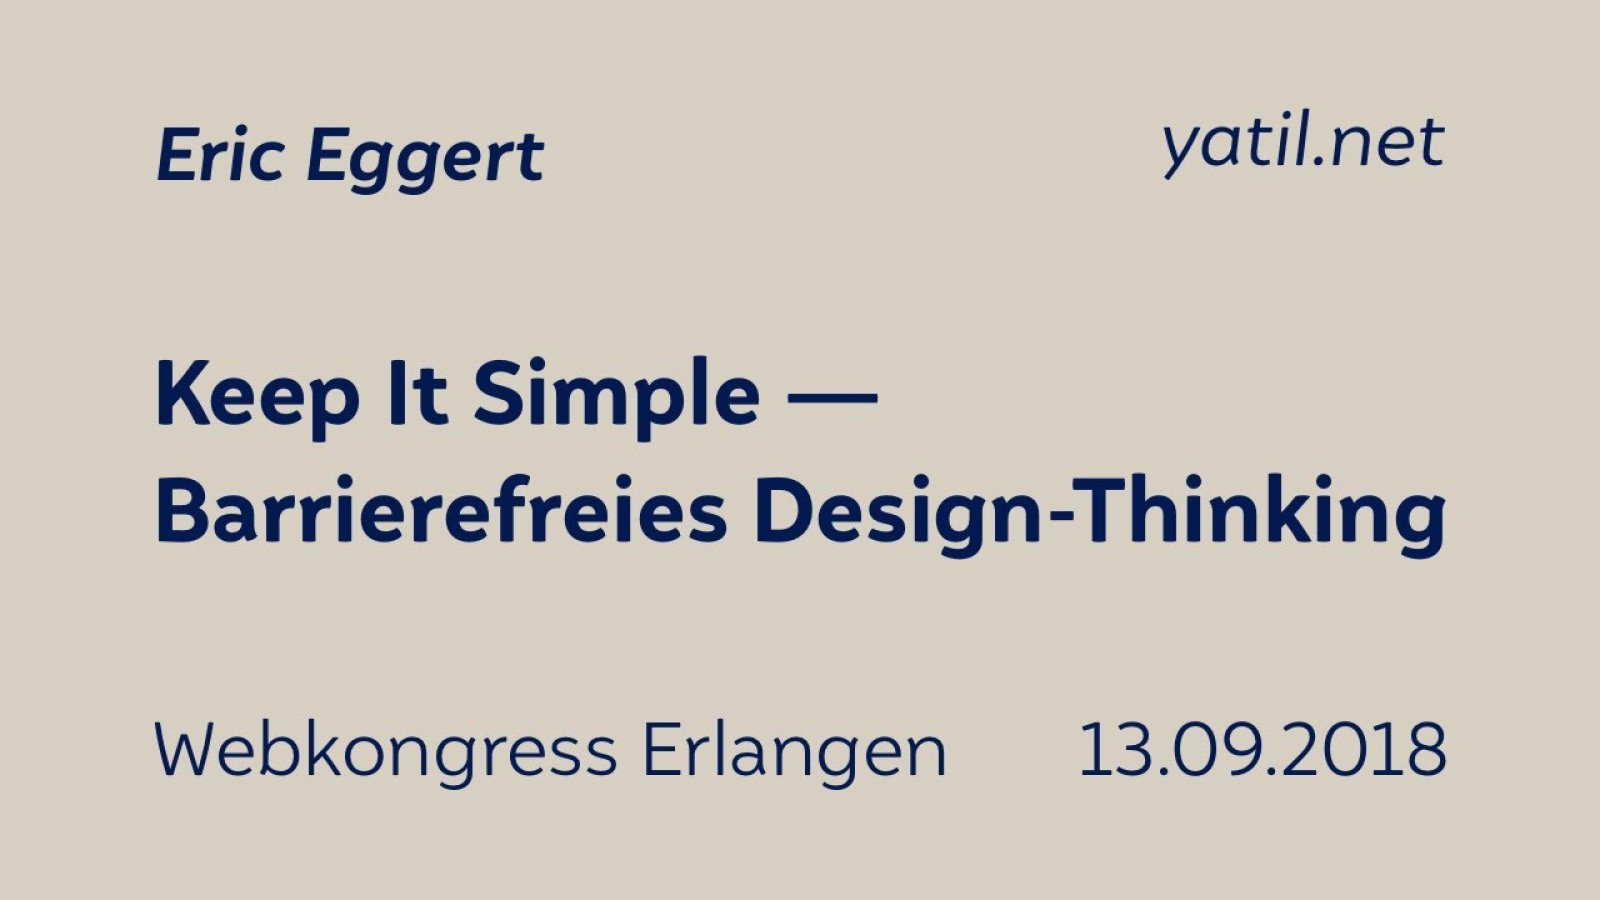 Keep it simple. Barrierefreies Design-Thinking.